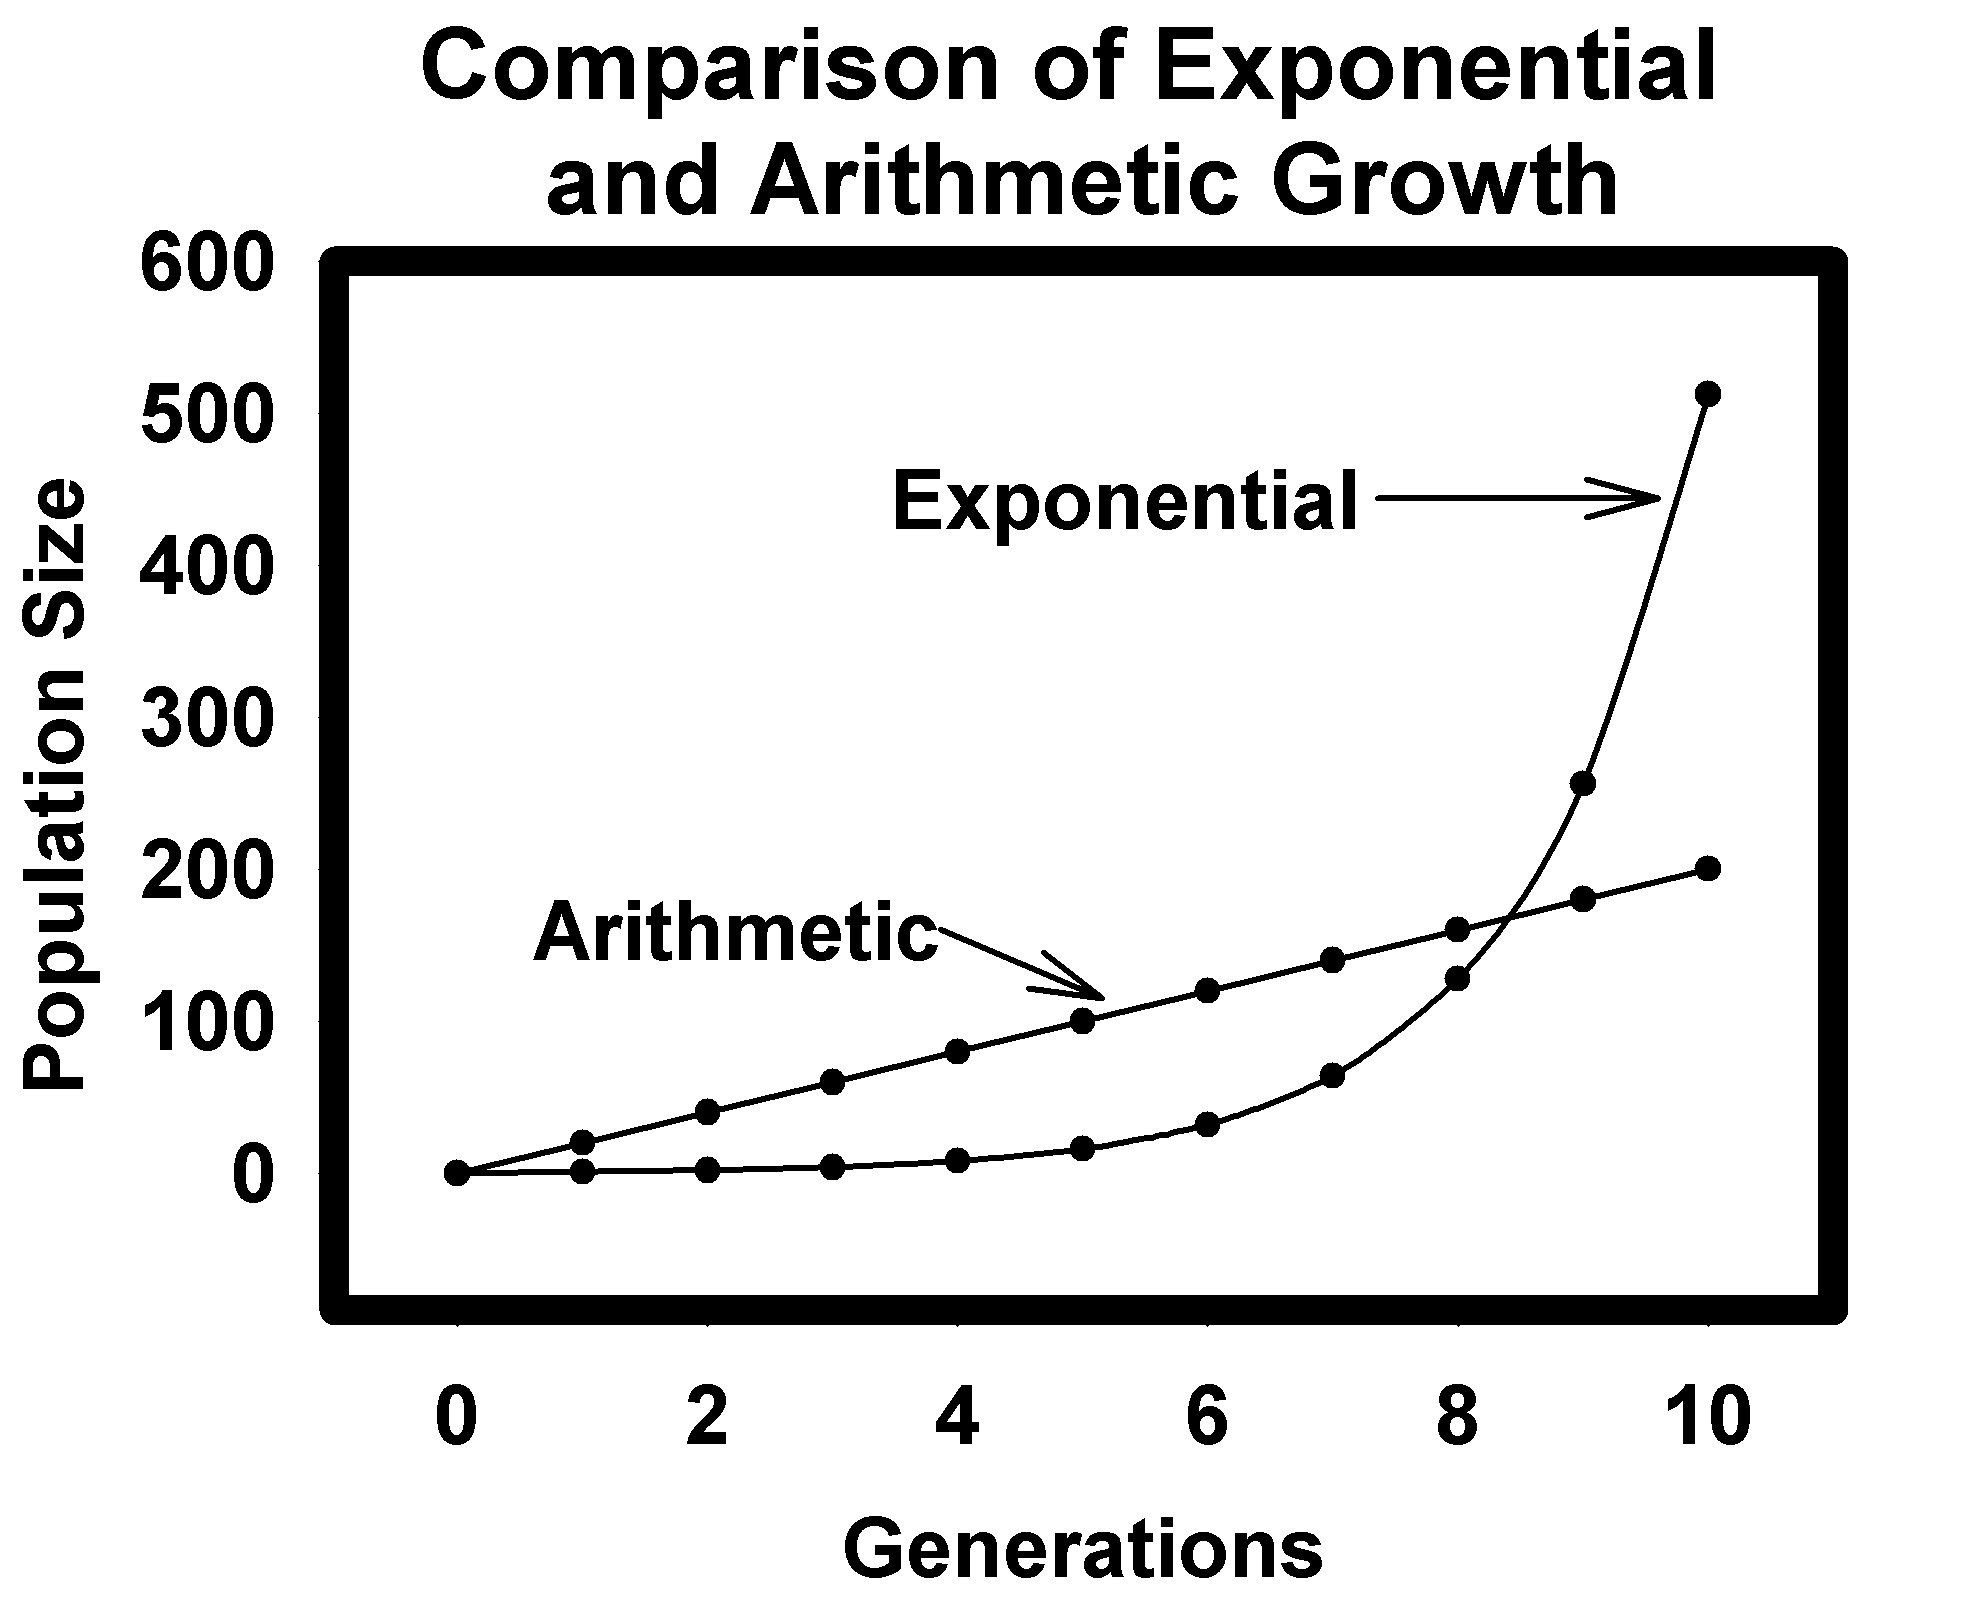 002 Essay Example Malthusgrowthcurves Jpg Thomas Malthus An On The Principle Of Marvelous Population Summary Analysis Argued In His (1798) That Full